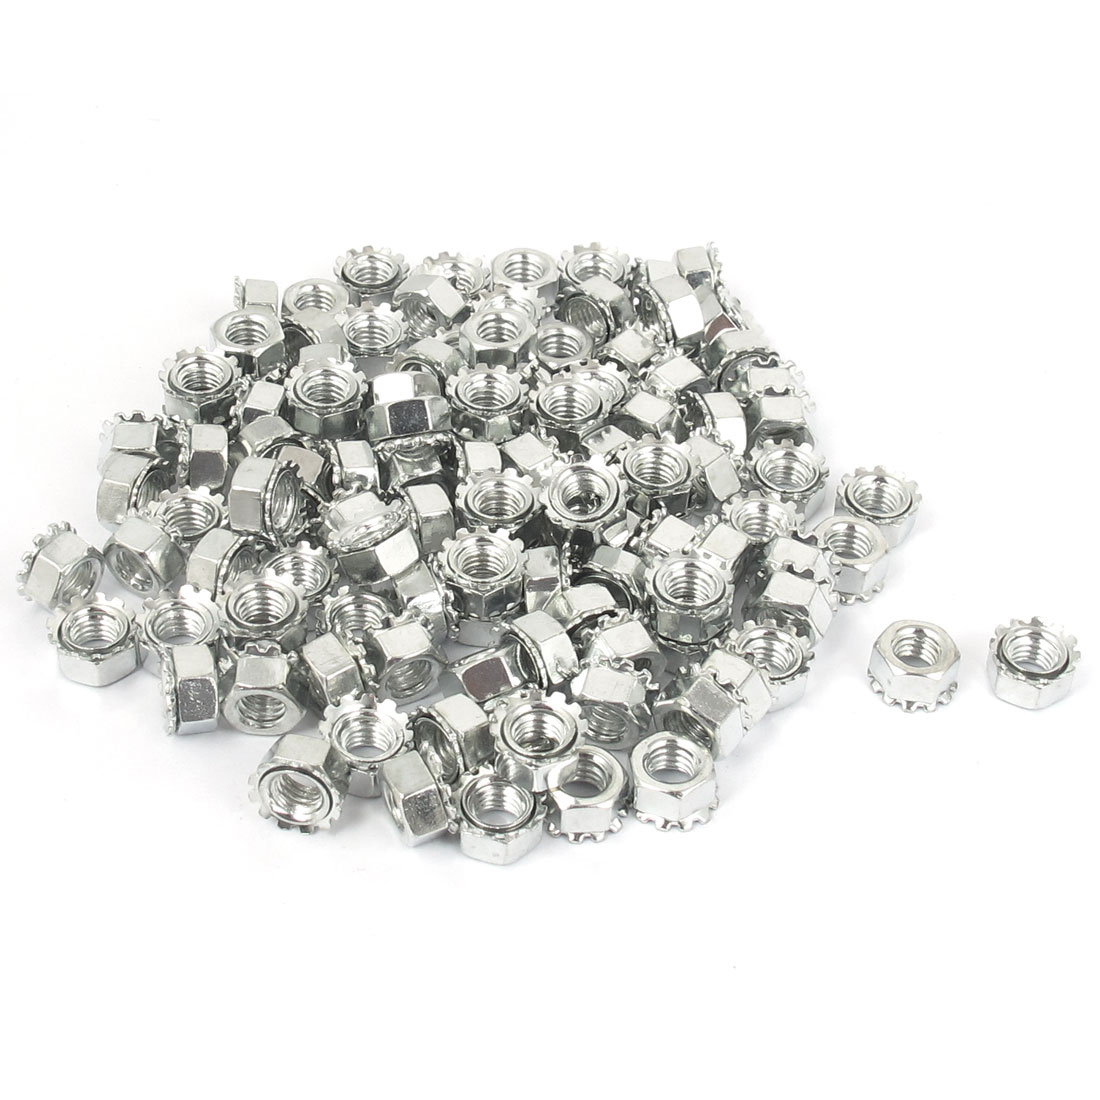 M5 Thread Dia Zinc Plated External Tooth Locknuts Kep Nut Silver Tone 100pcs